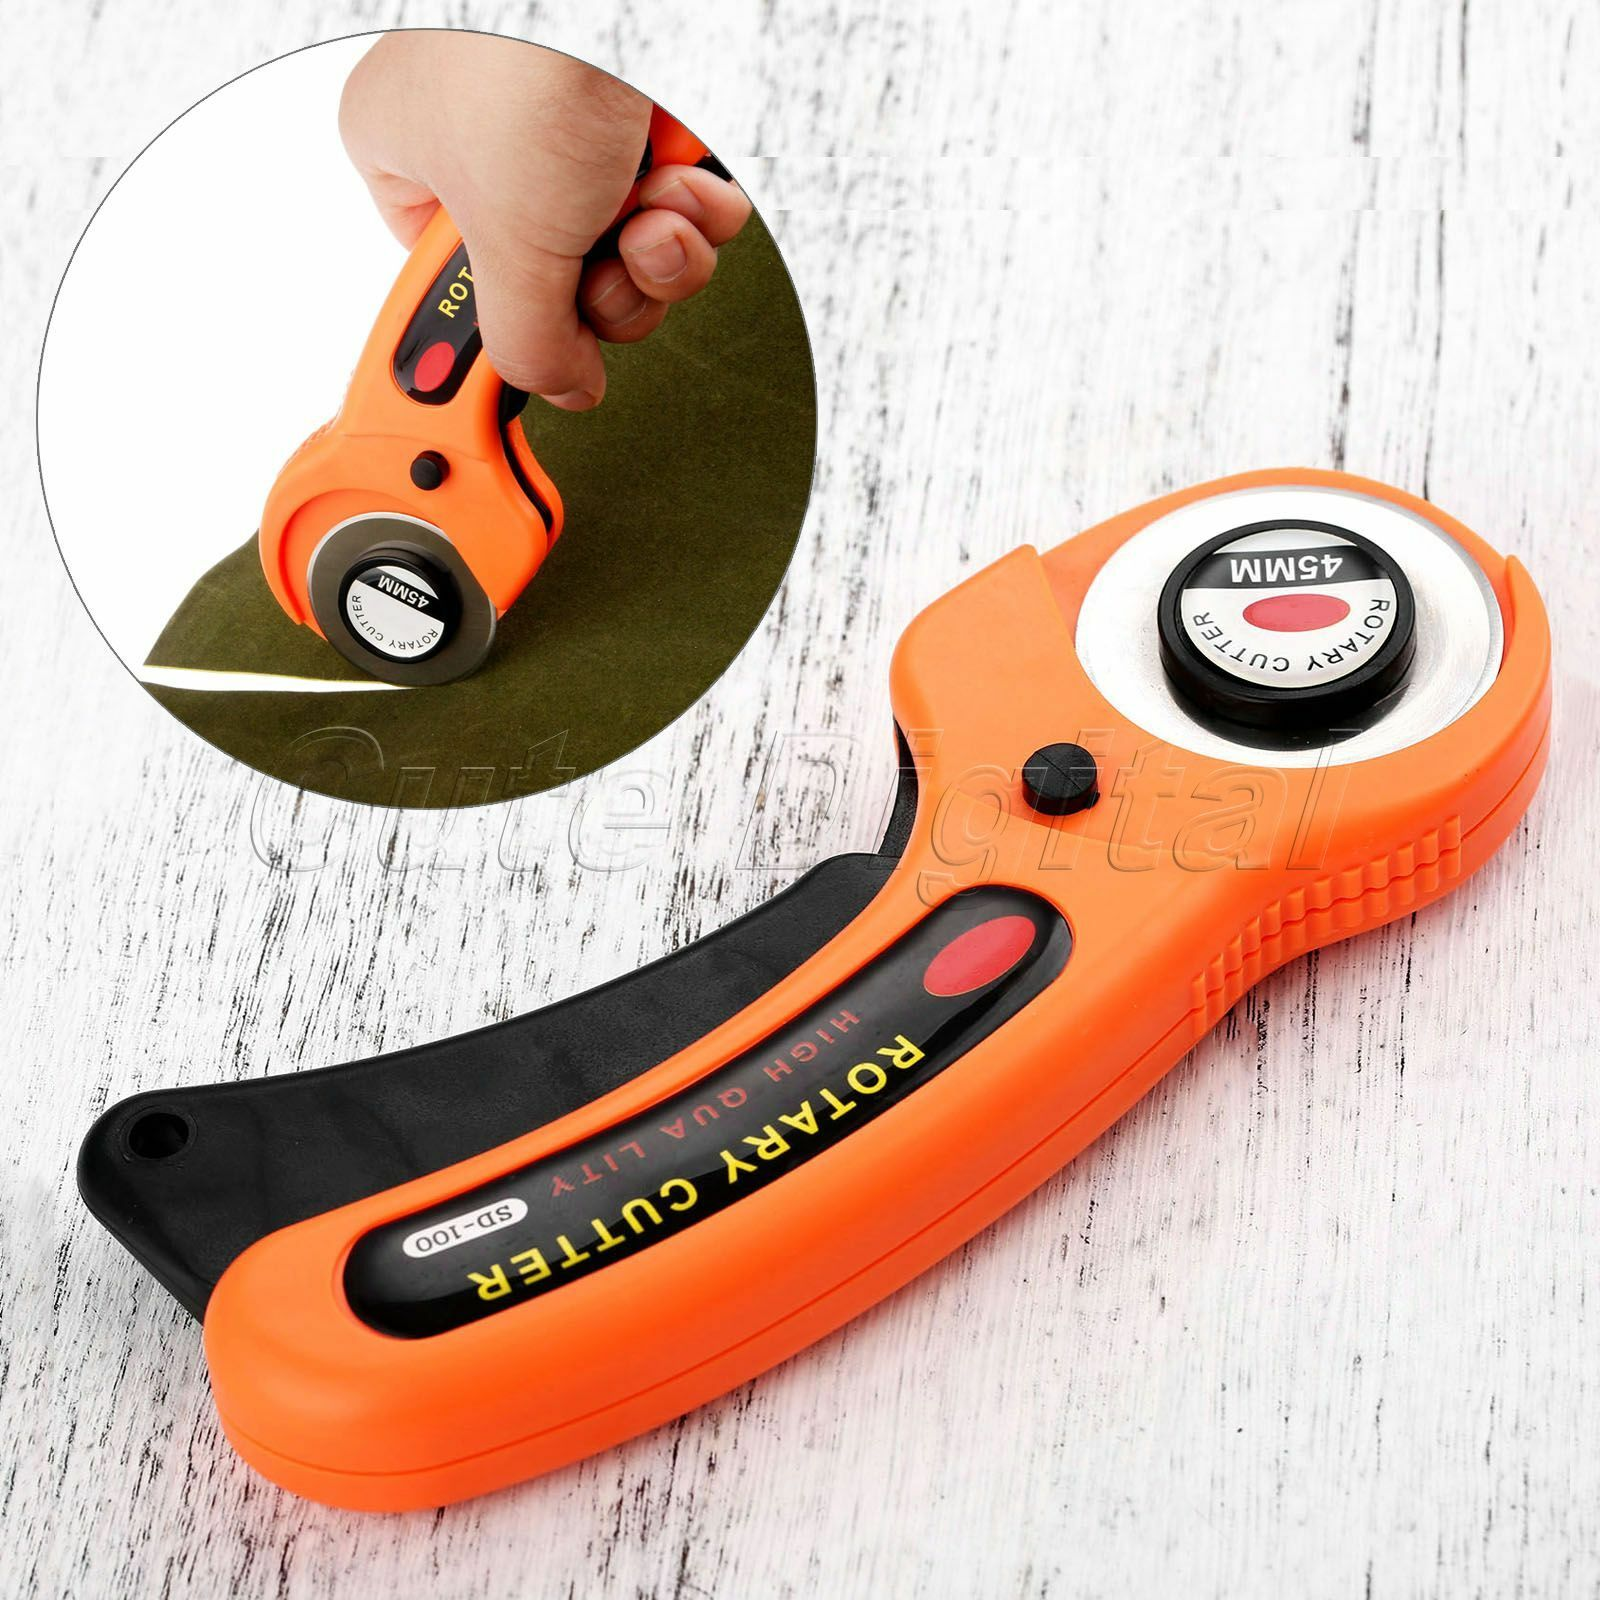 45mm Premium Round Cutters Set Sewing Rotary Cloth Guiding Cutting Machine Quilters Quilting Fabric Craft Tool